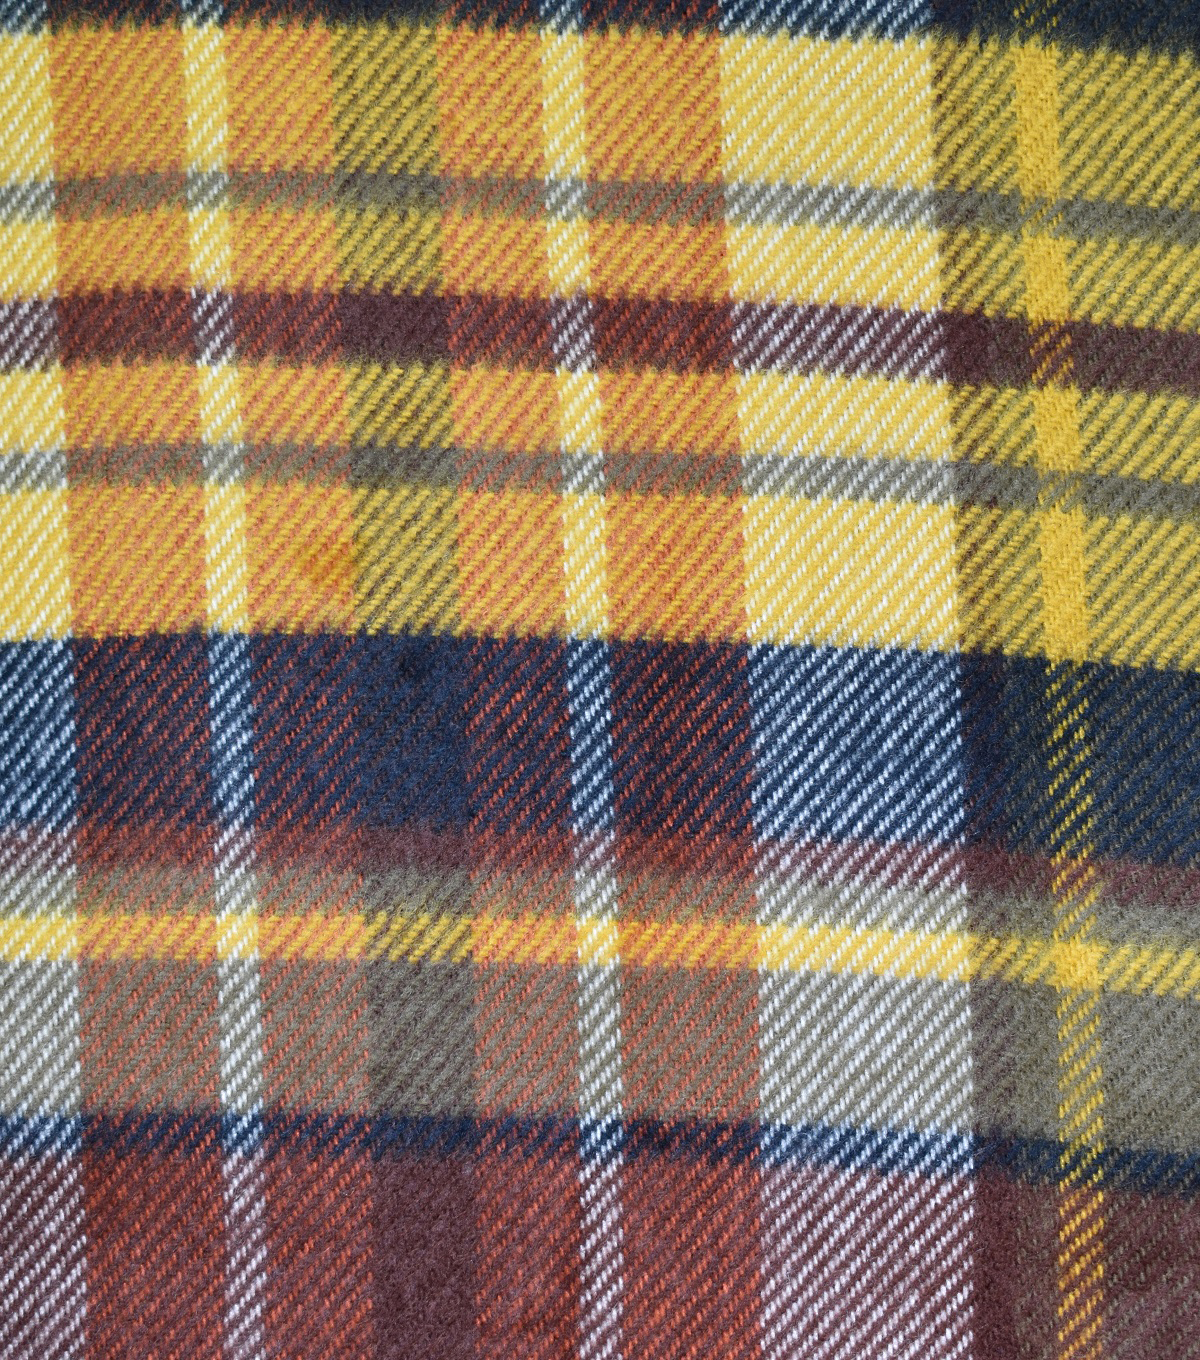 Sportswear Acrylic Fabric 52\u0022-Maroon & Yellow Plaid